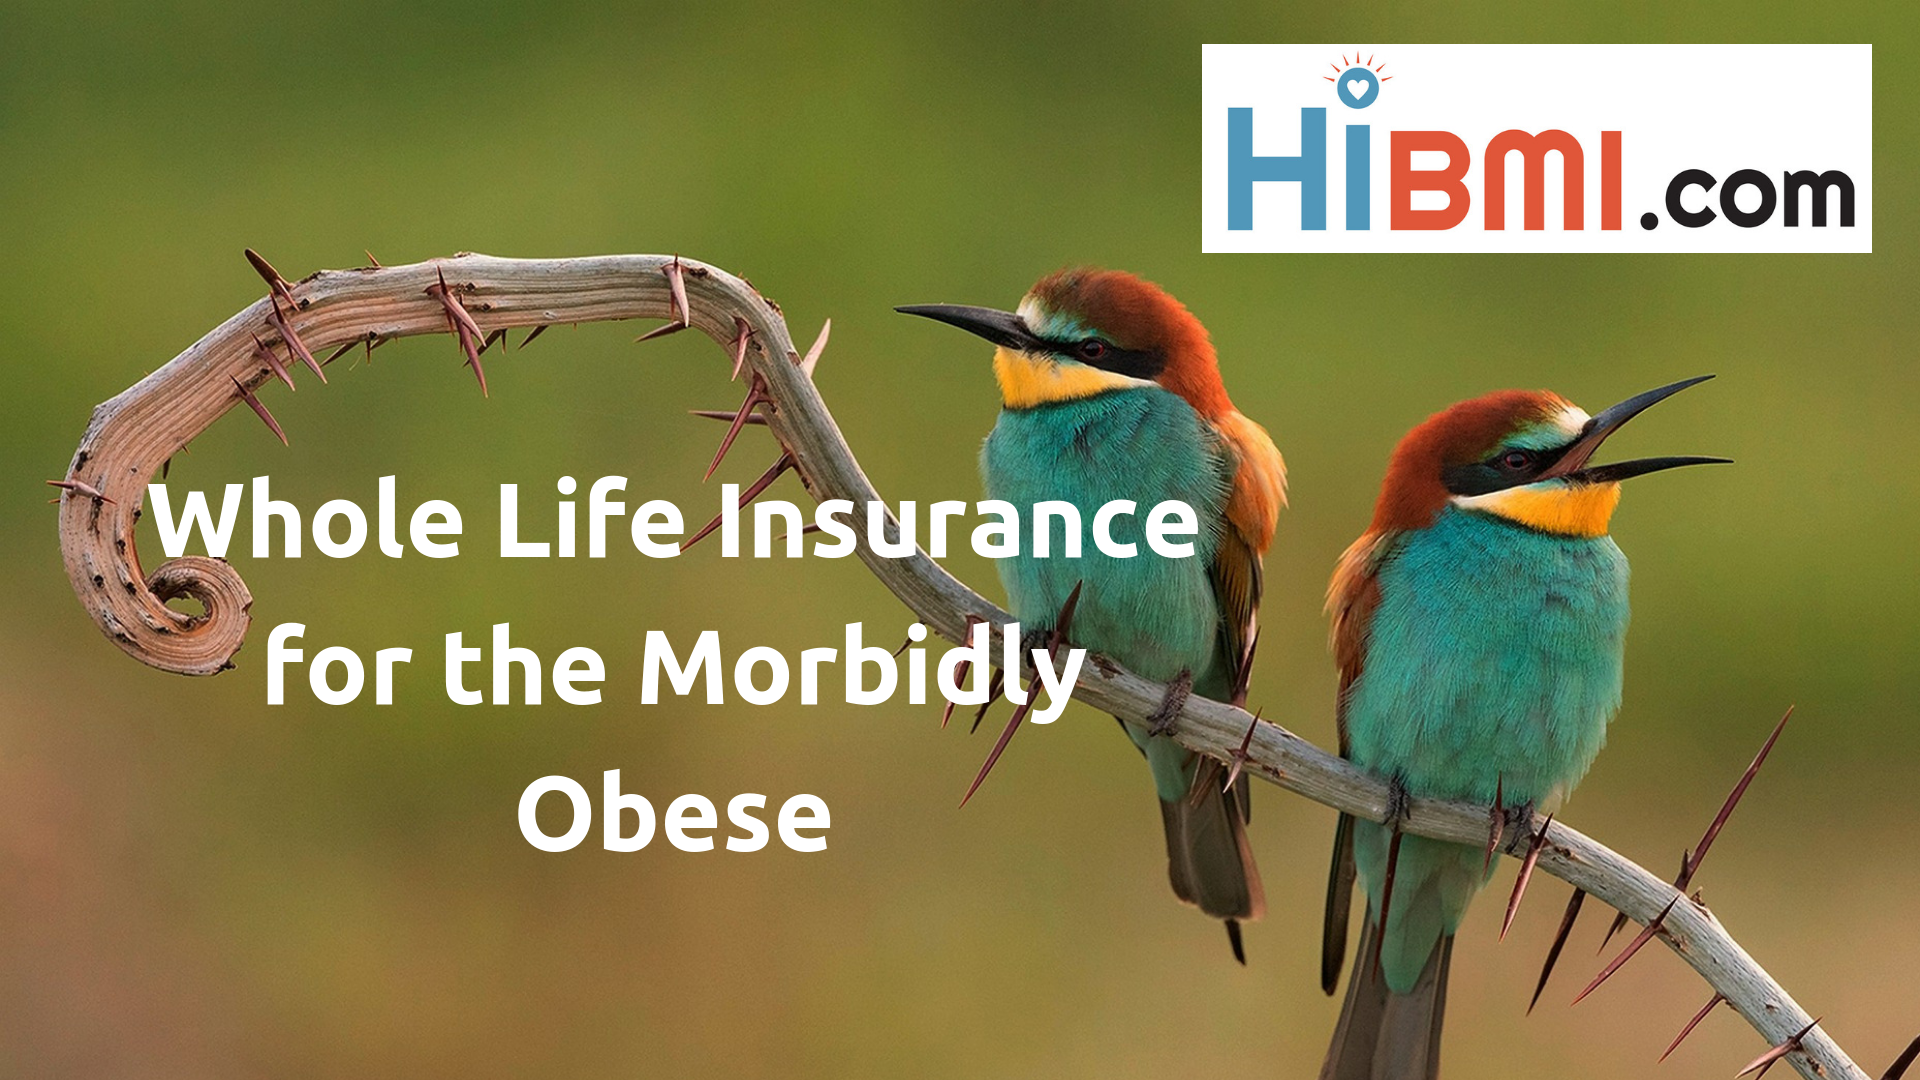 life insurance for the morbidly obese, whole life insurance for the morbidly obese